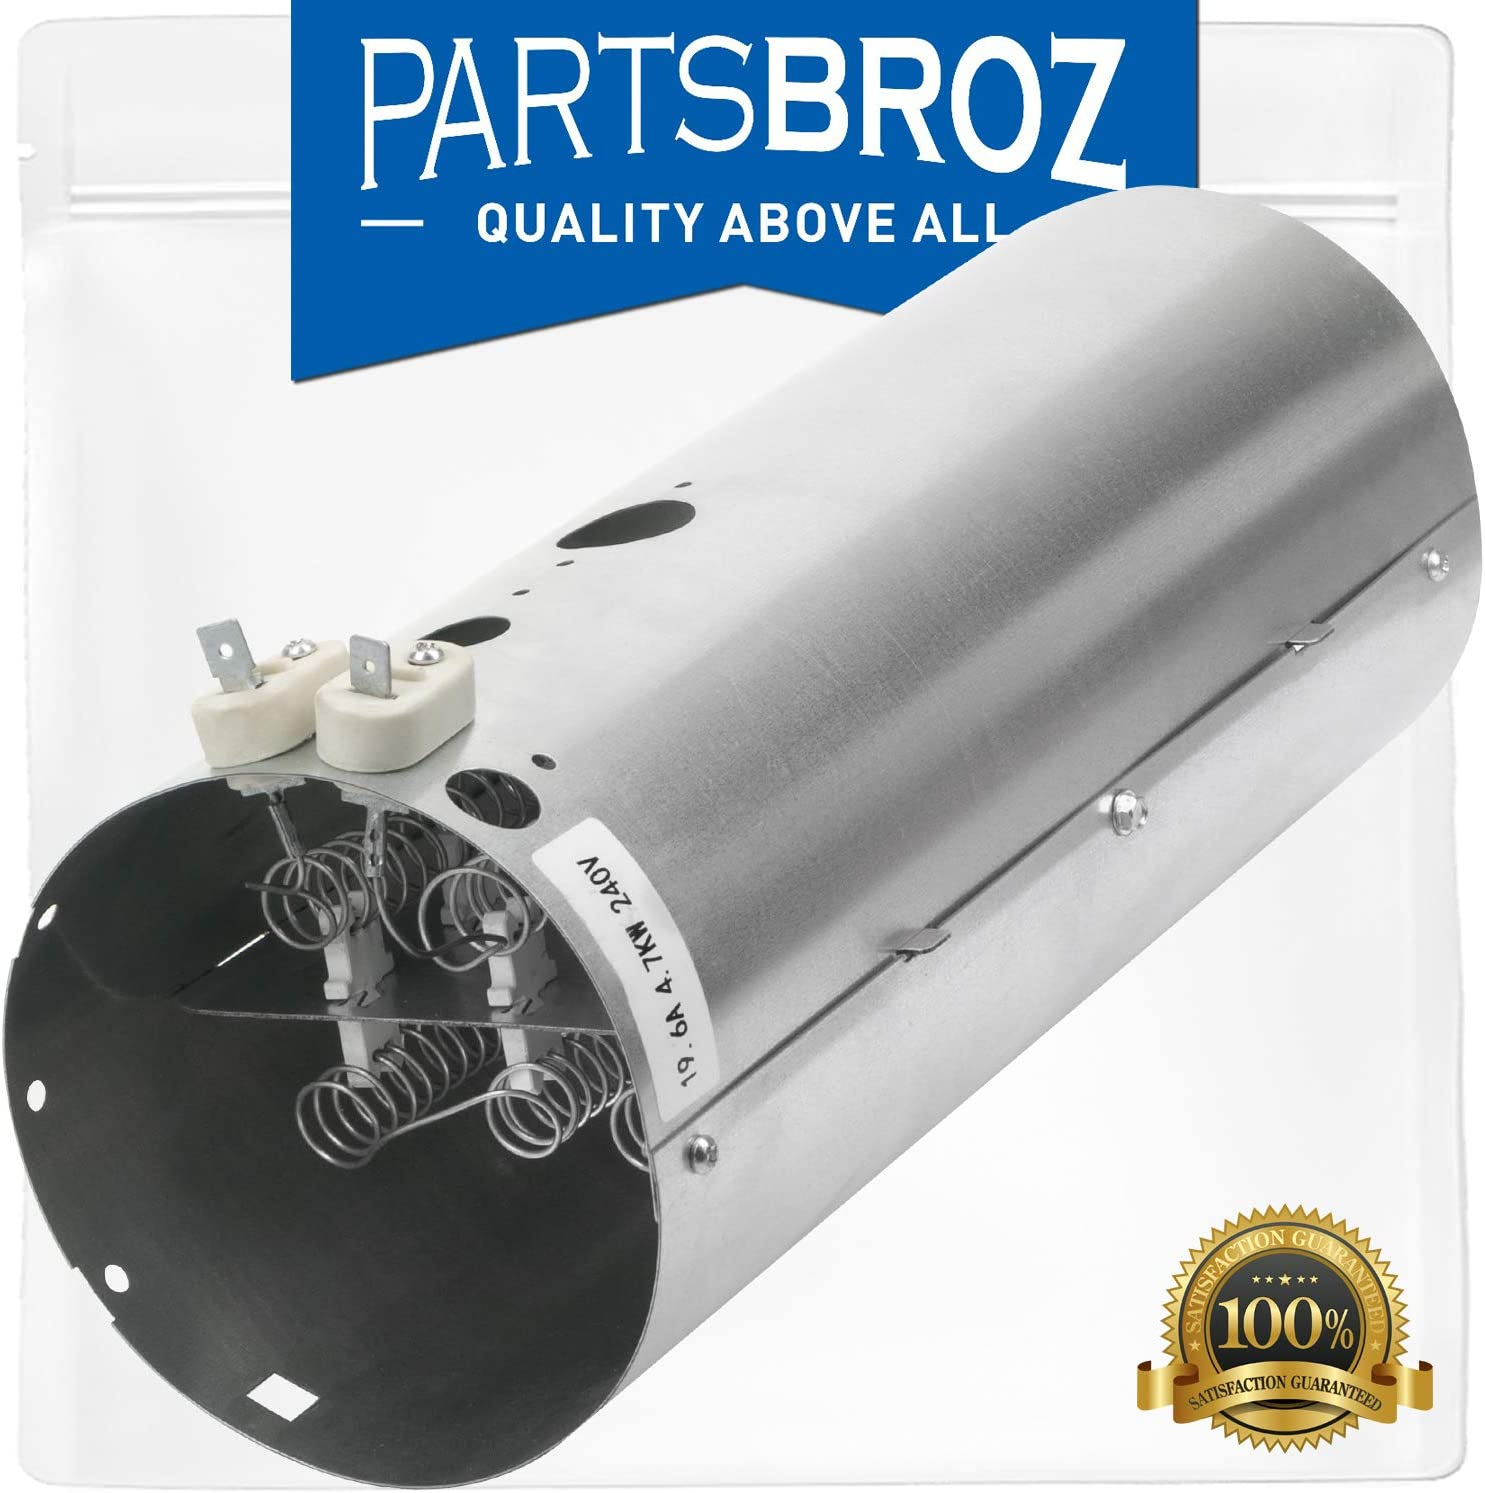 137114000 Heating Element Assembly by PartsBroz for Frigidaire & Electrolux Dryers - Replaces Part Numbers AP4456656, 1531129, AH2367792, EA2367792, PS2367792